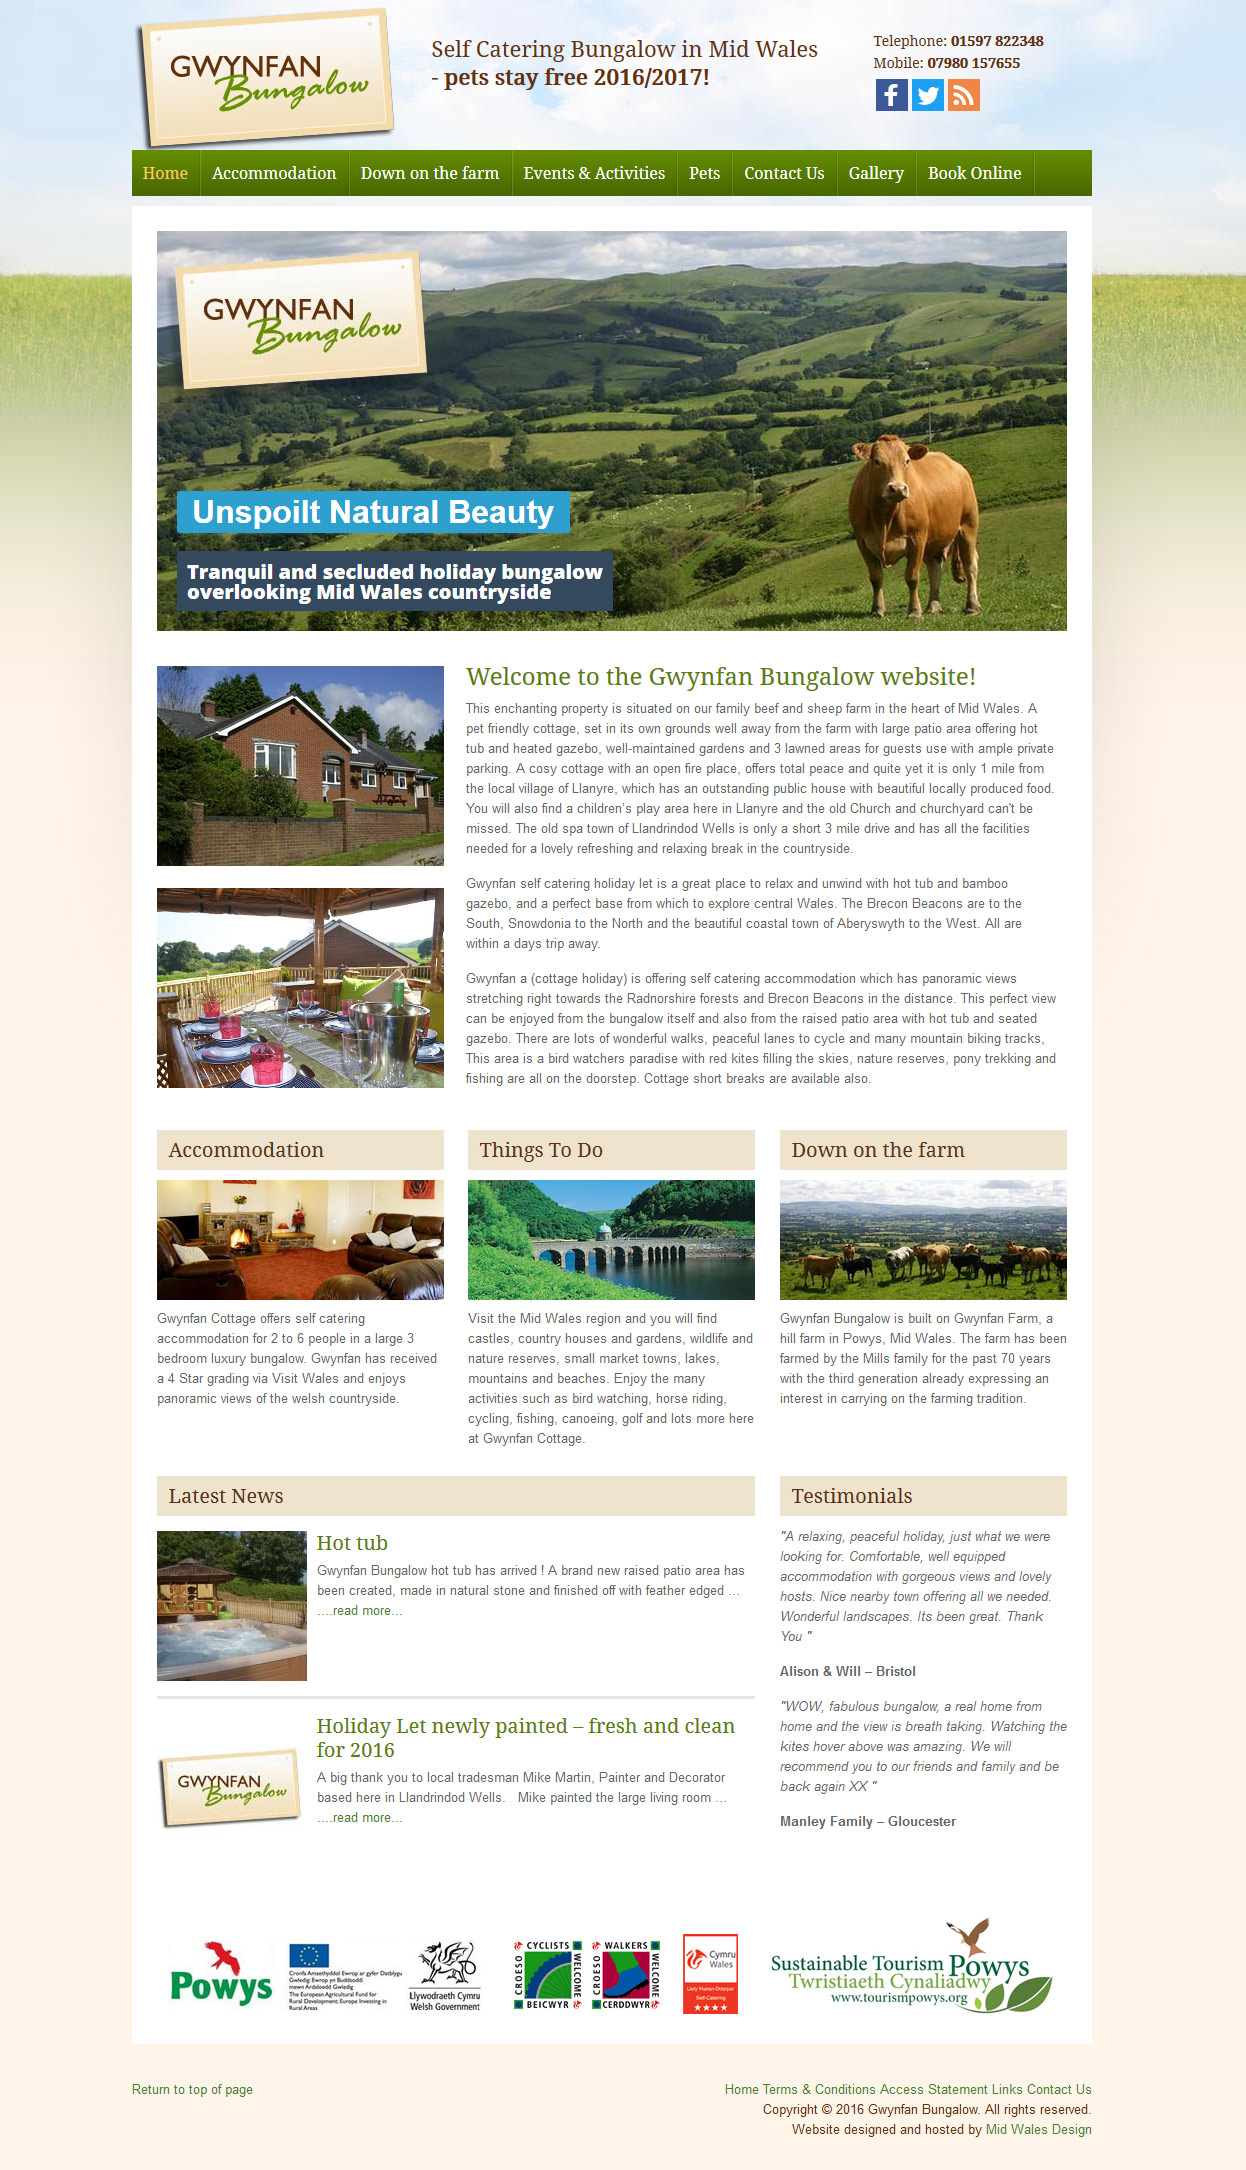 Llandrindod wells tourism website